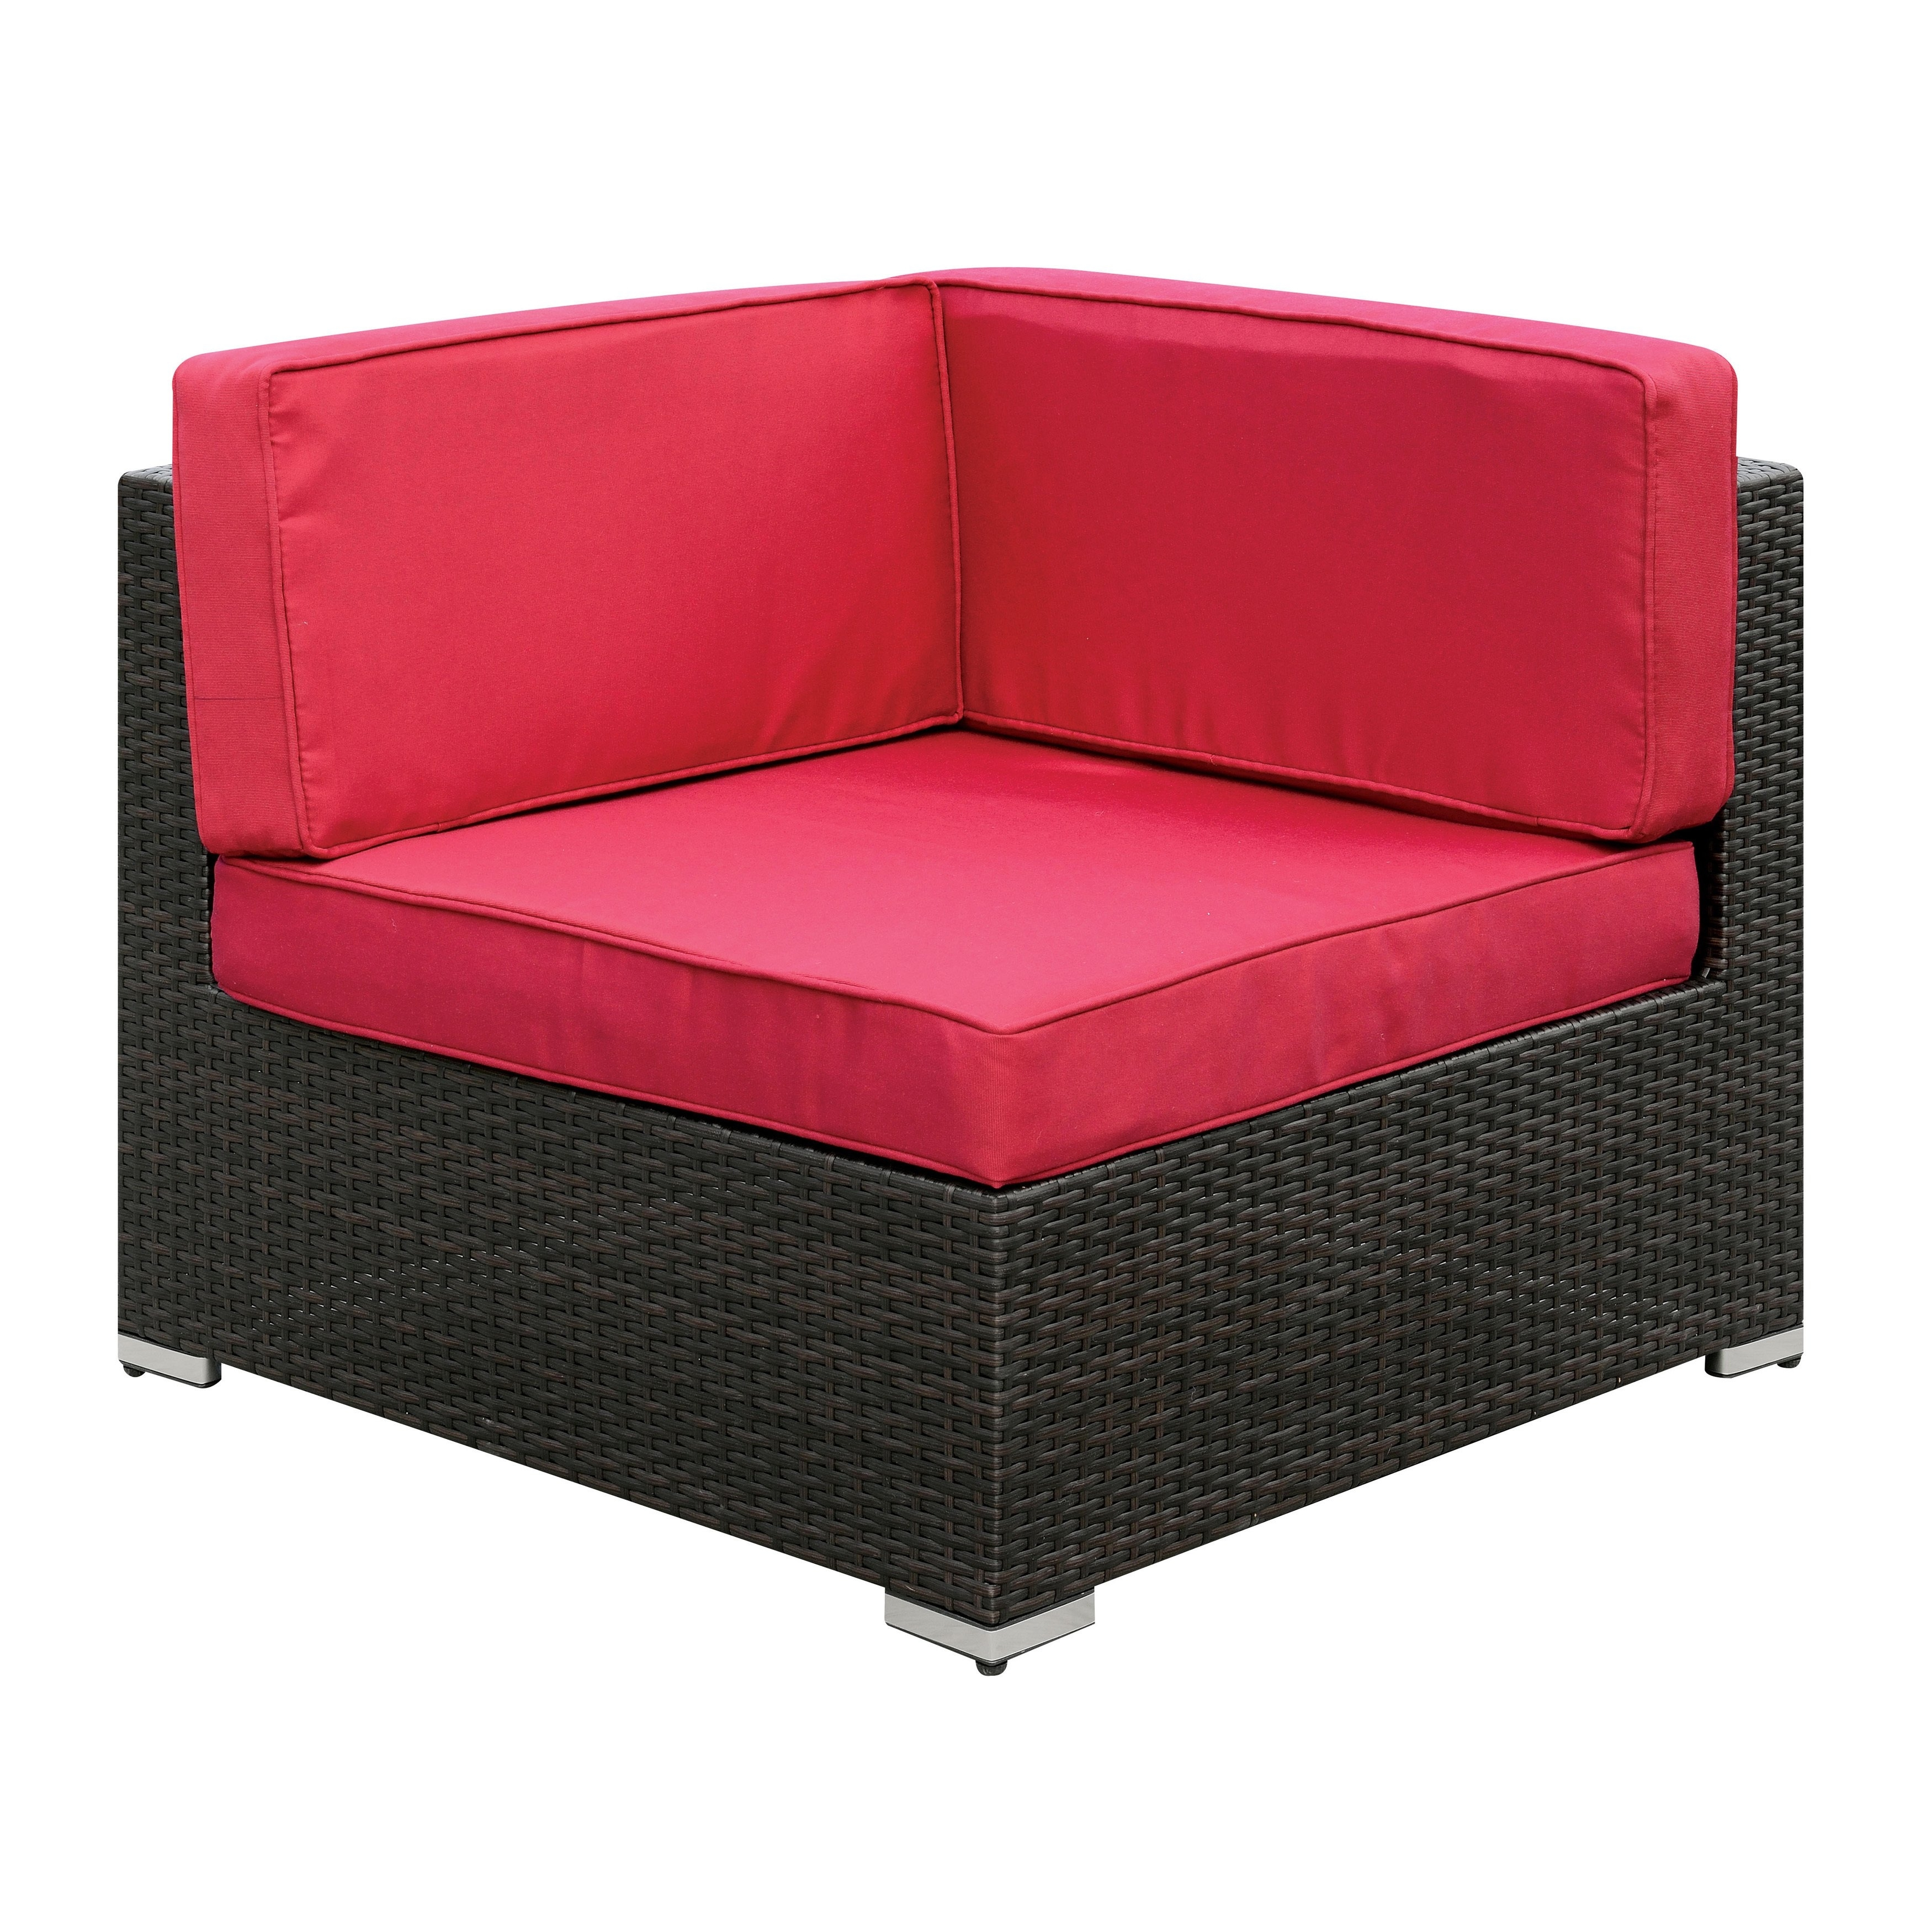 Shop Furniture Of America Marisa Contemporary 2 Piece Wicker Pertaining To Marissa Ii 3 Piece Sectionals (View 21 of 25)